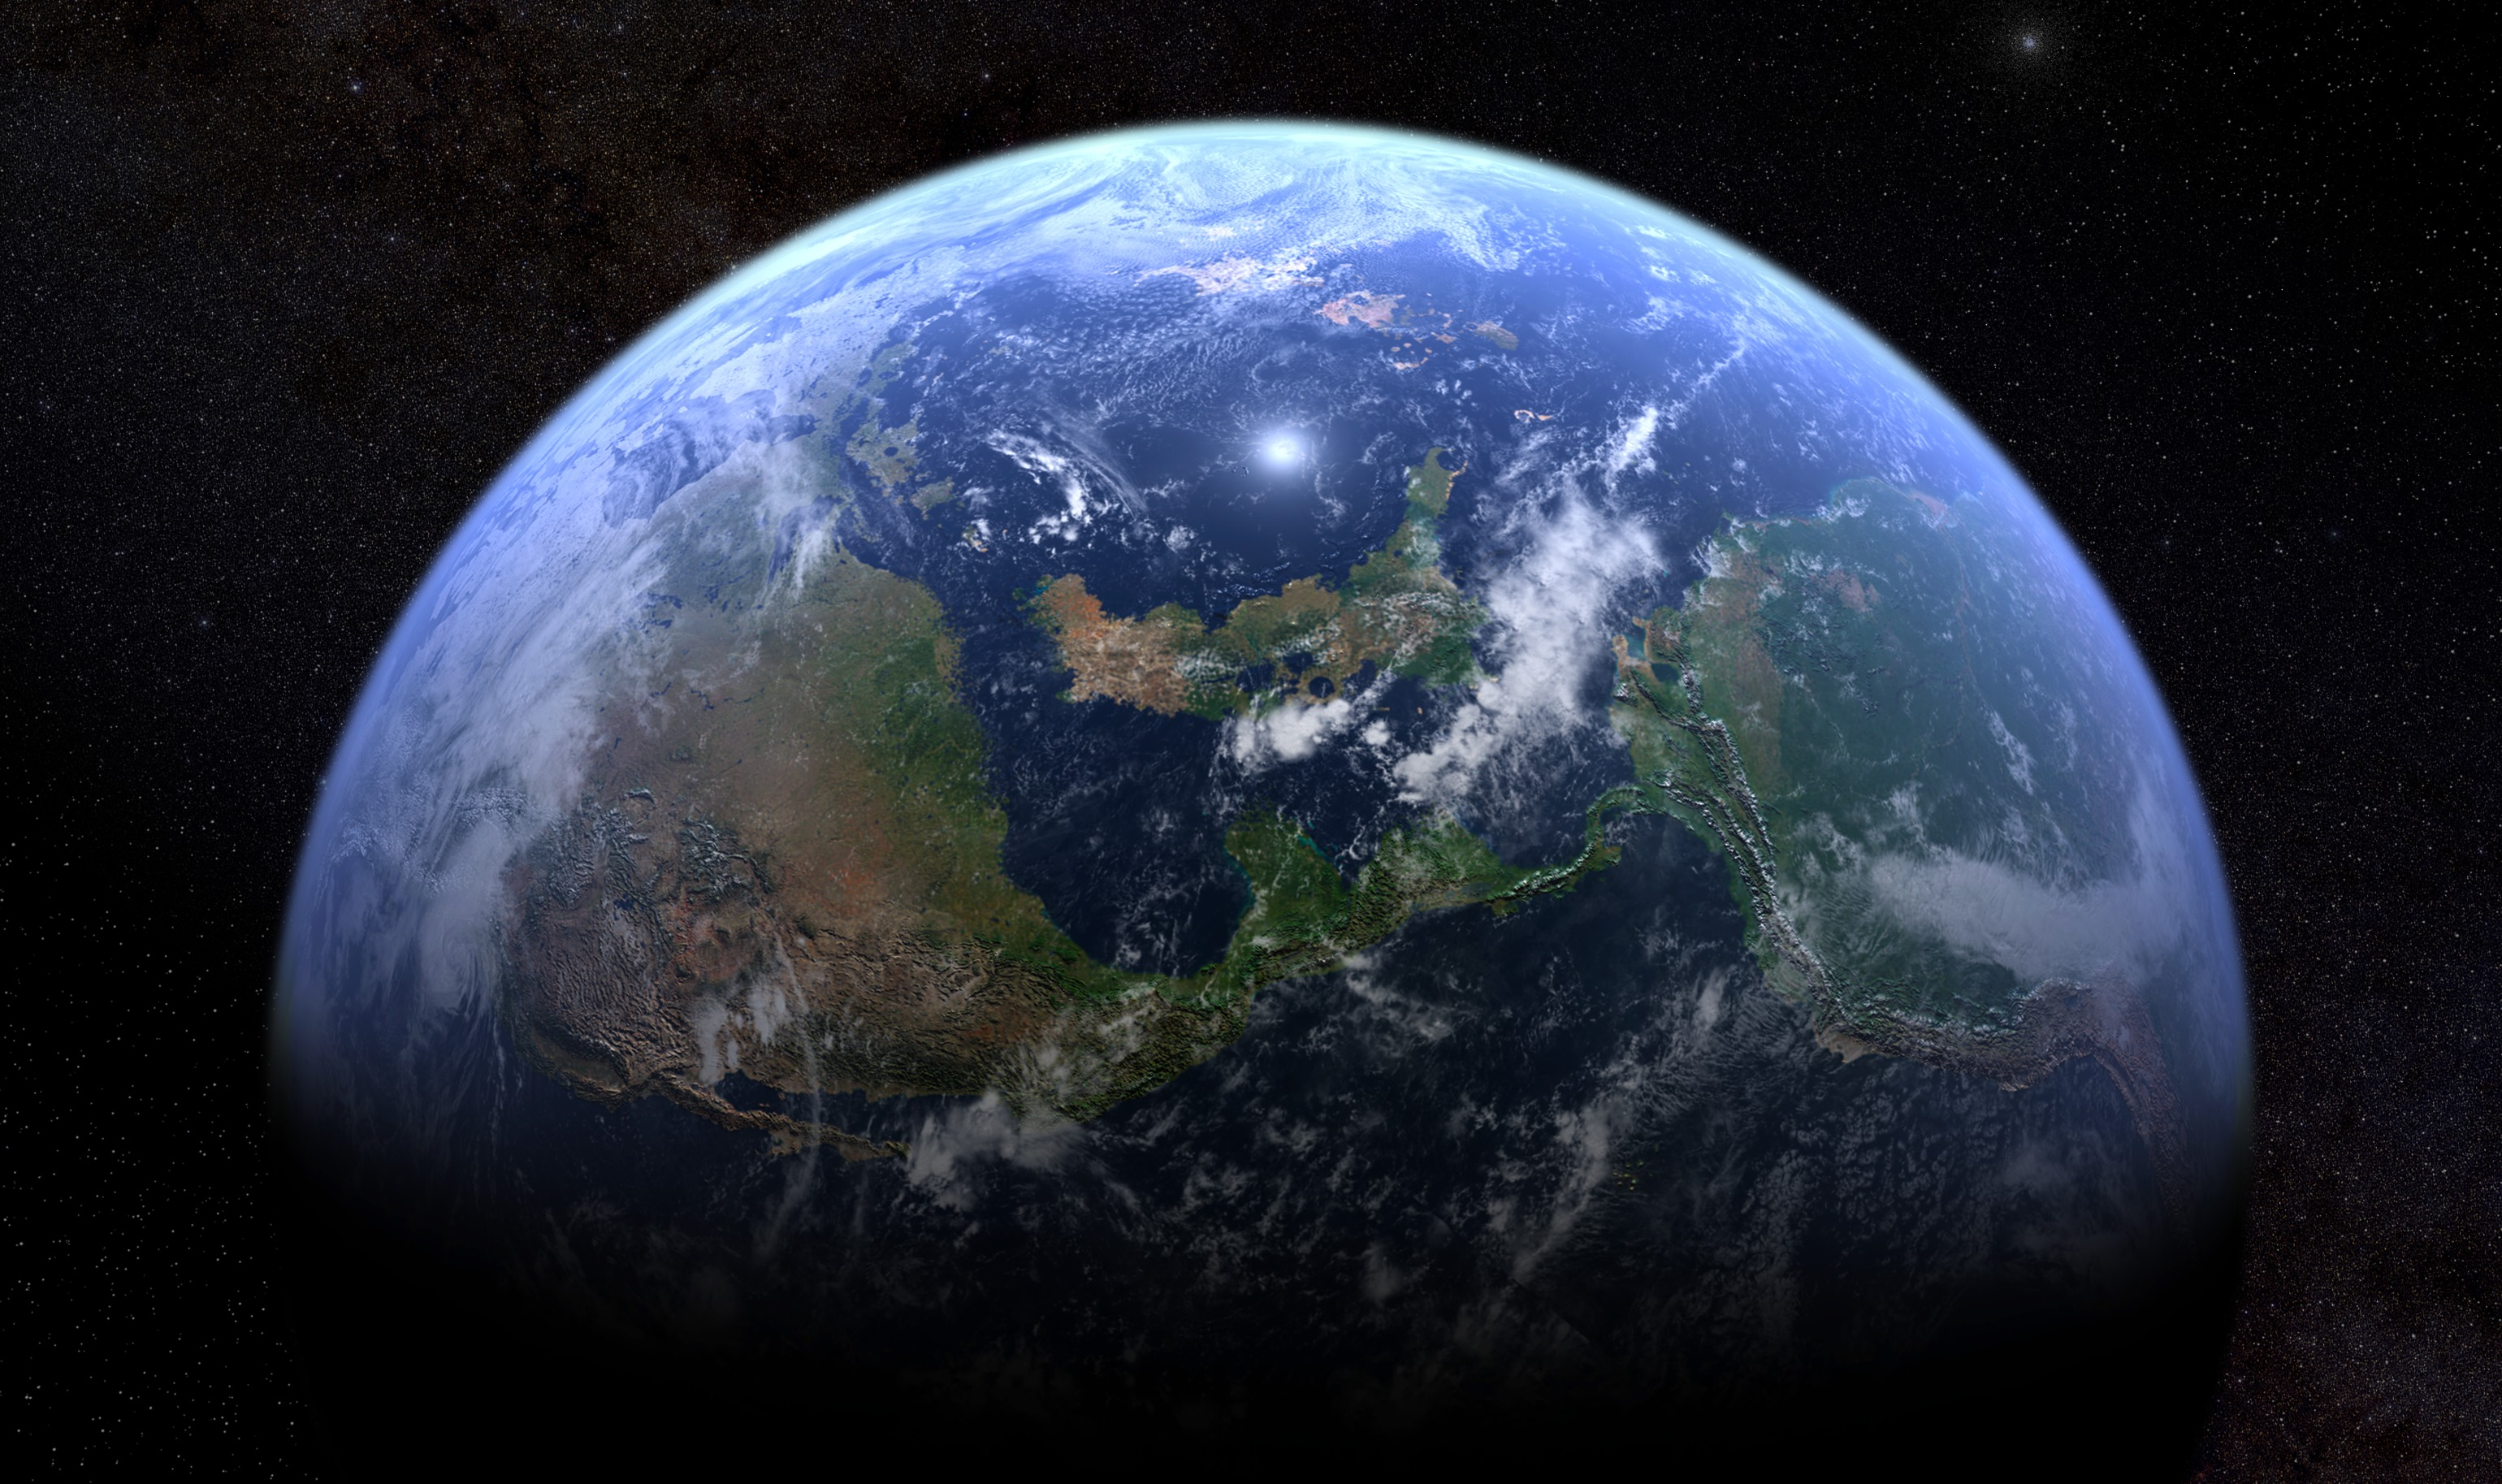 2560x1080 Earth Space 2560x1080 Resolution HD 4k